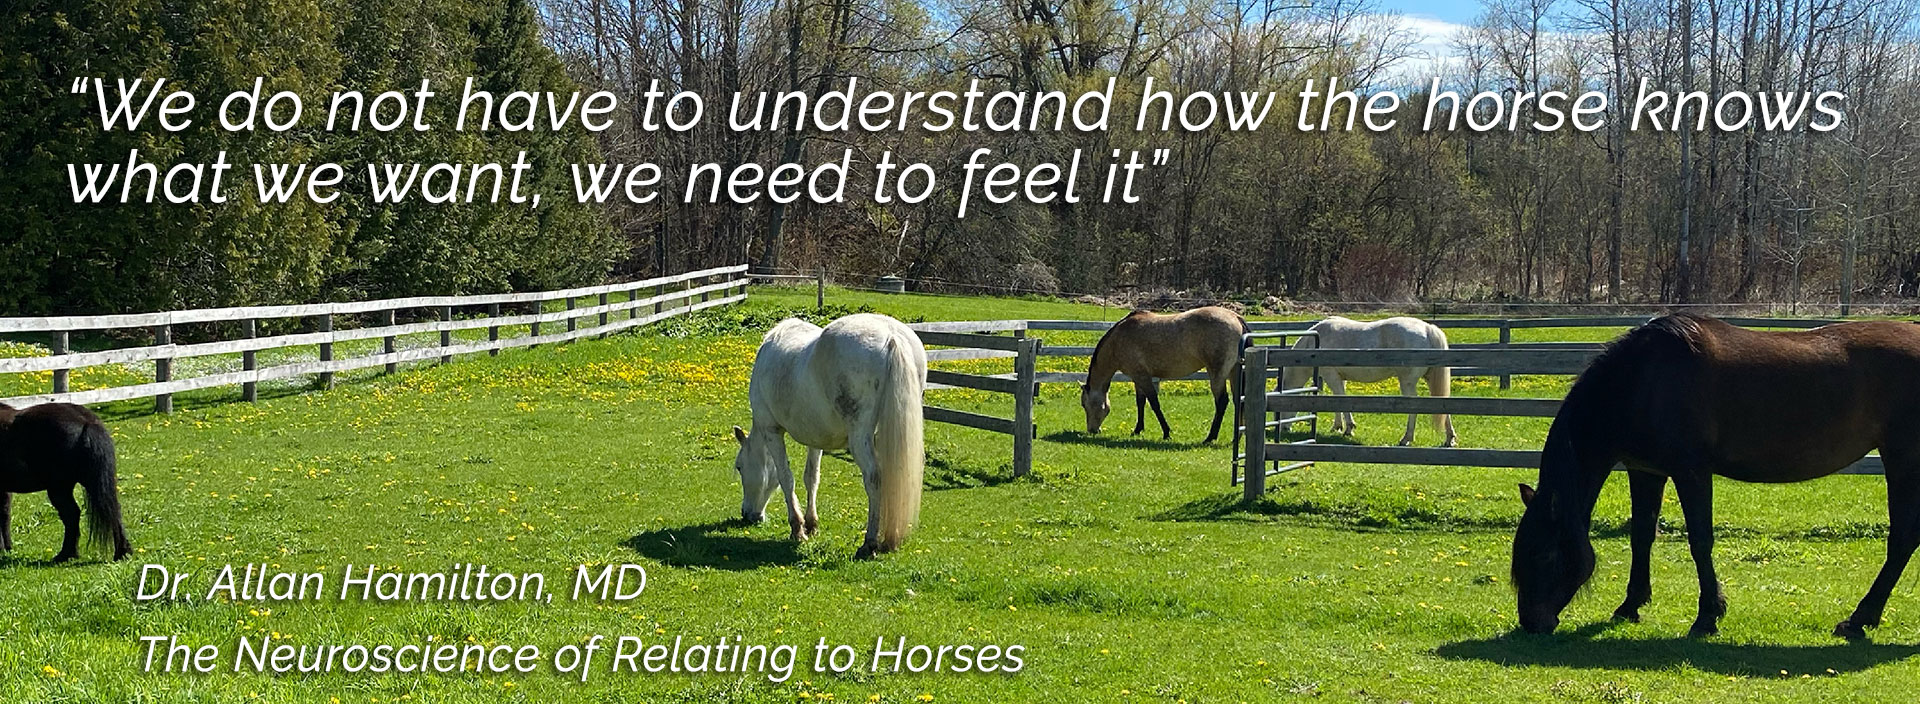 We do not need to understand how the horse knows what we want, we need to feel it. Dr. Allan Hamilton, MD, The Neuroscience of Relating to Horses.